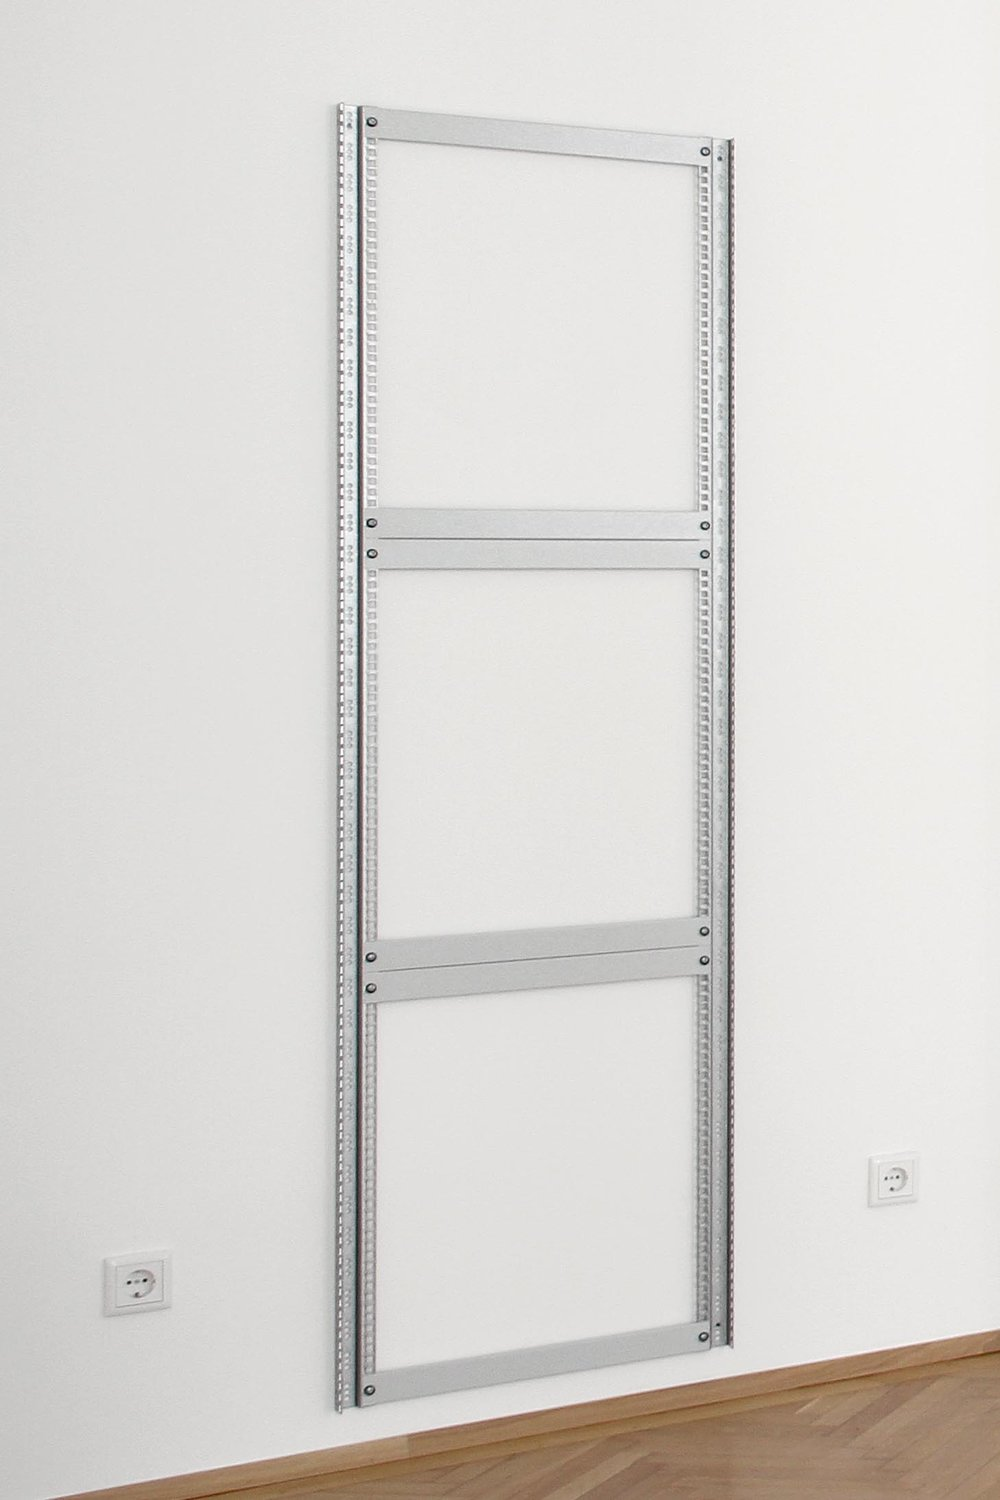 Ulrich Nausner, Memory Object (Grey) #4, 2017,  server rack rails, blank panels, screws , 186,5 x 54,5 x 3,2 cm, 1 + 1AP